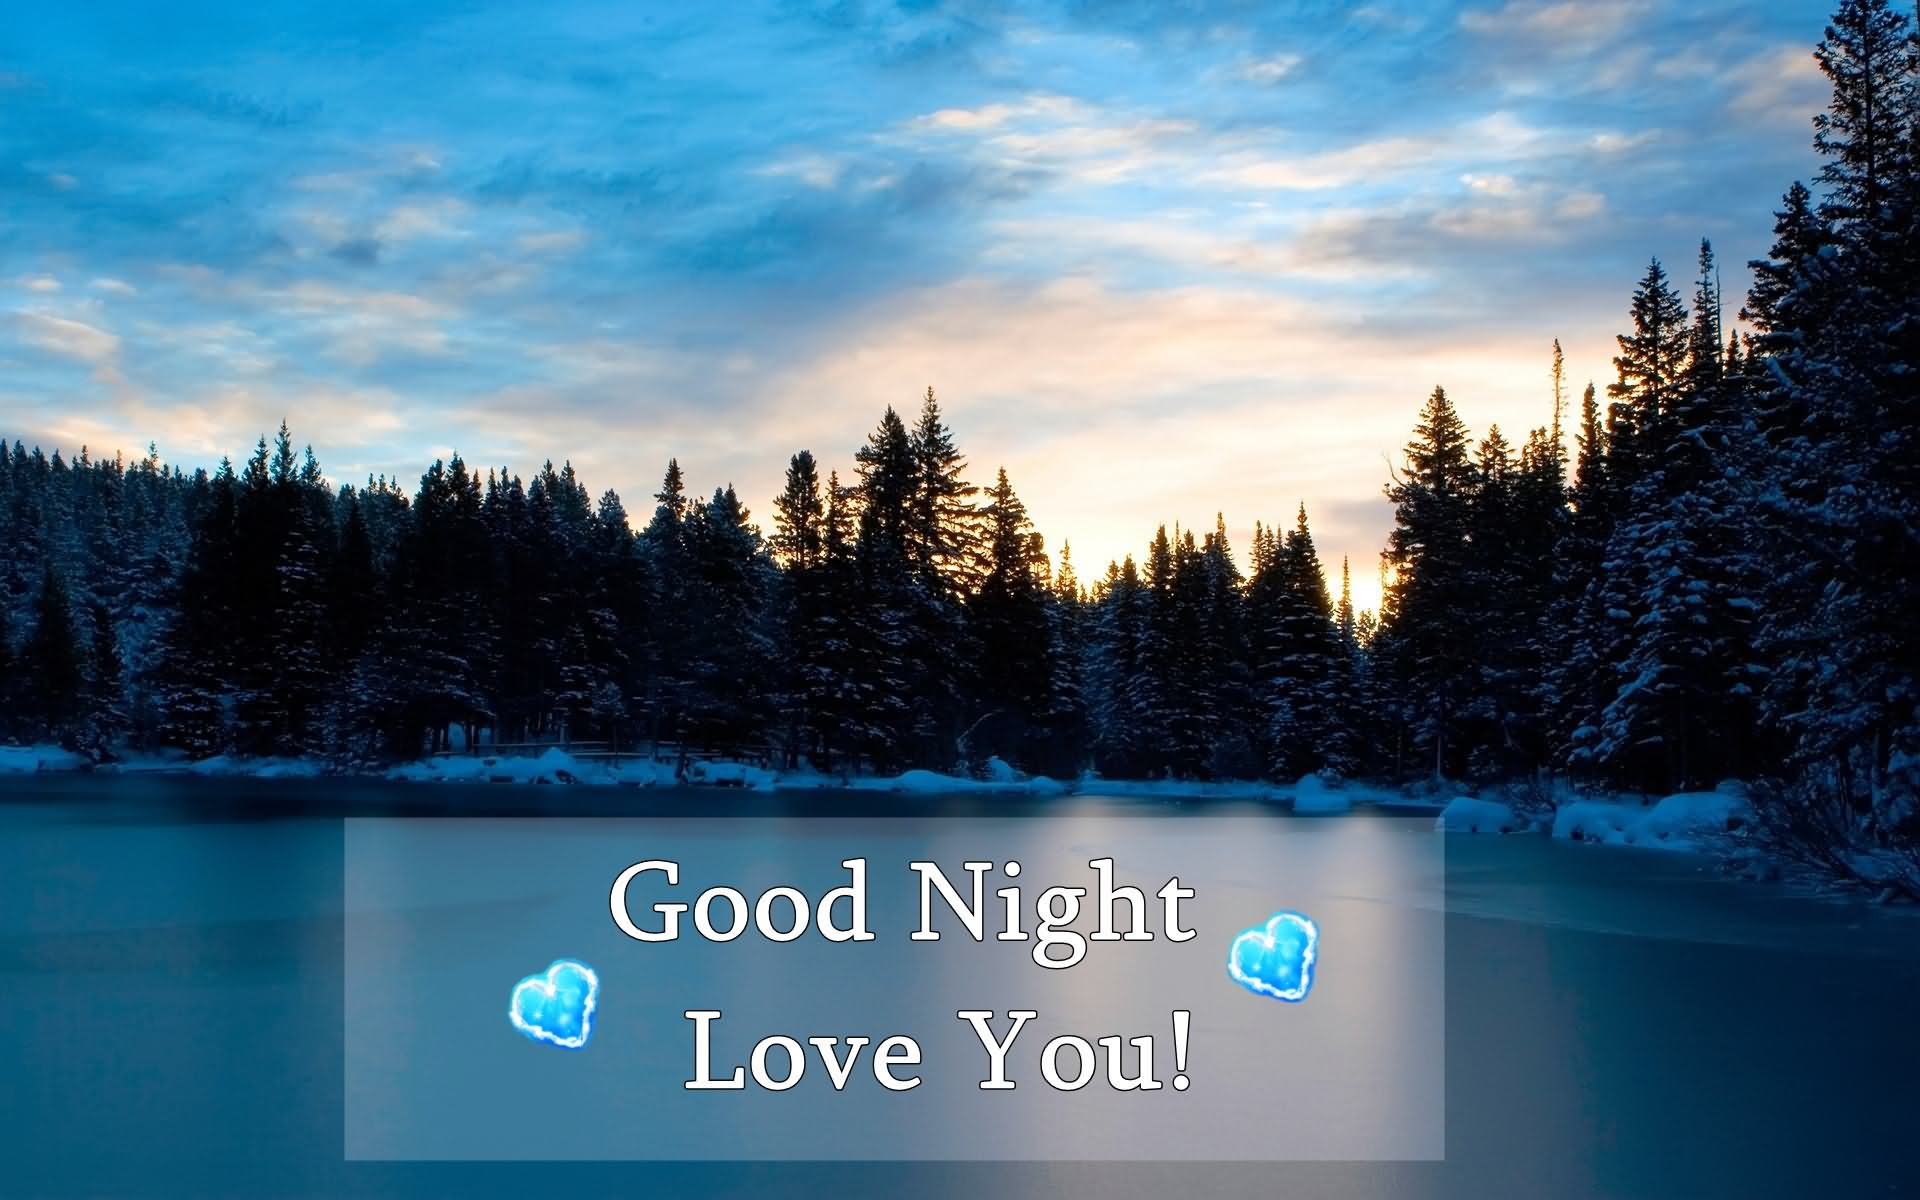 Love Wallpaper Good Night : 15 Awesome Good Night Love Images